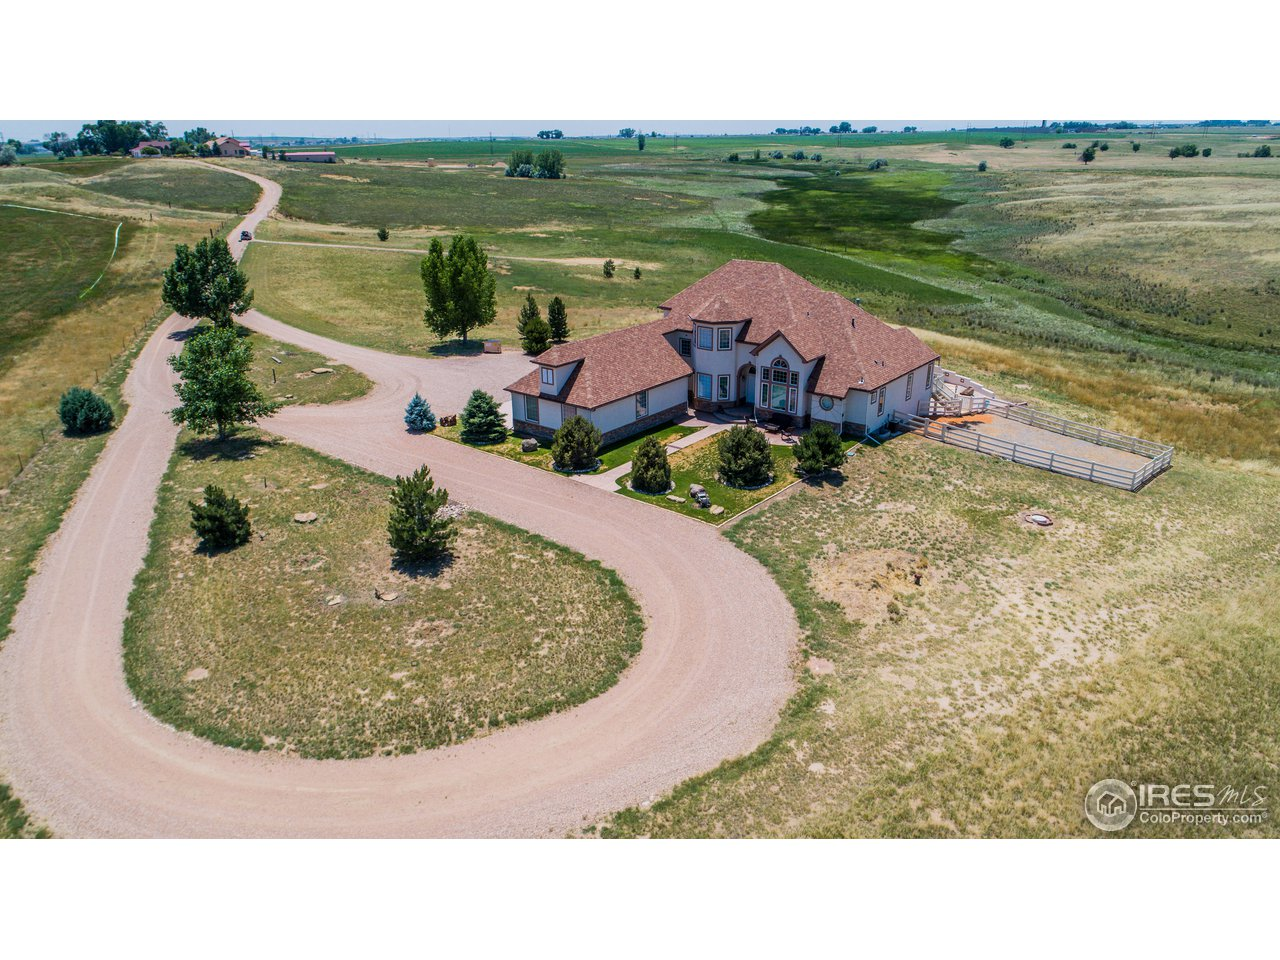 217 83rd Ave, Greeley CO 80634